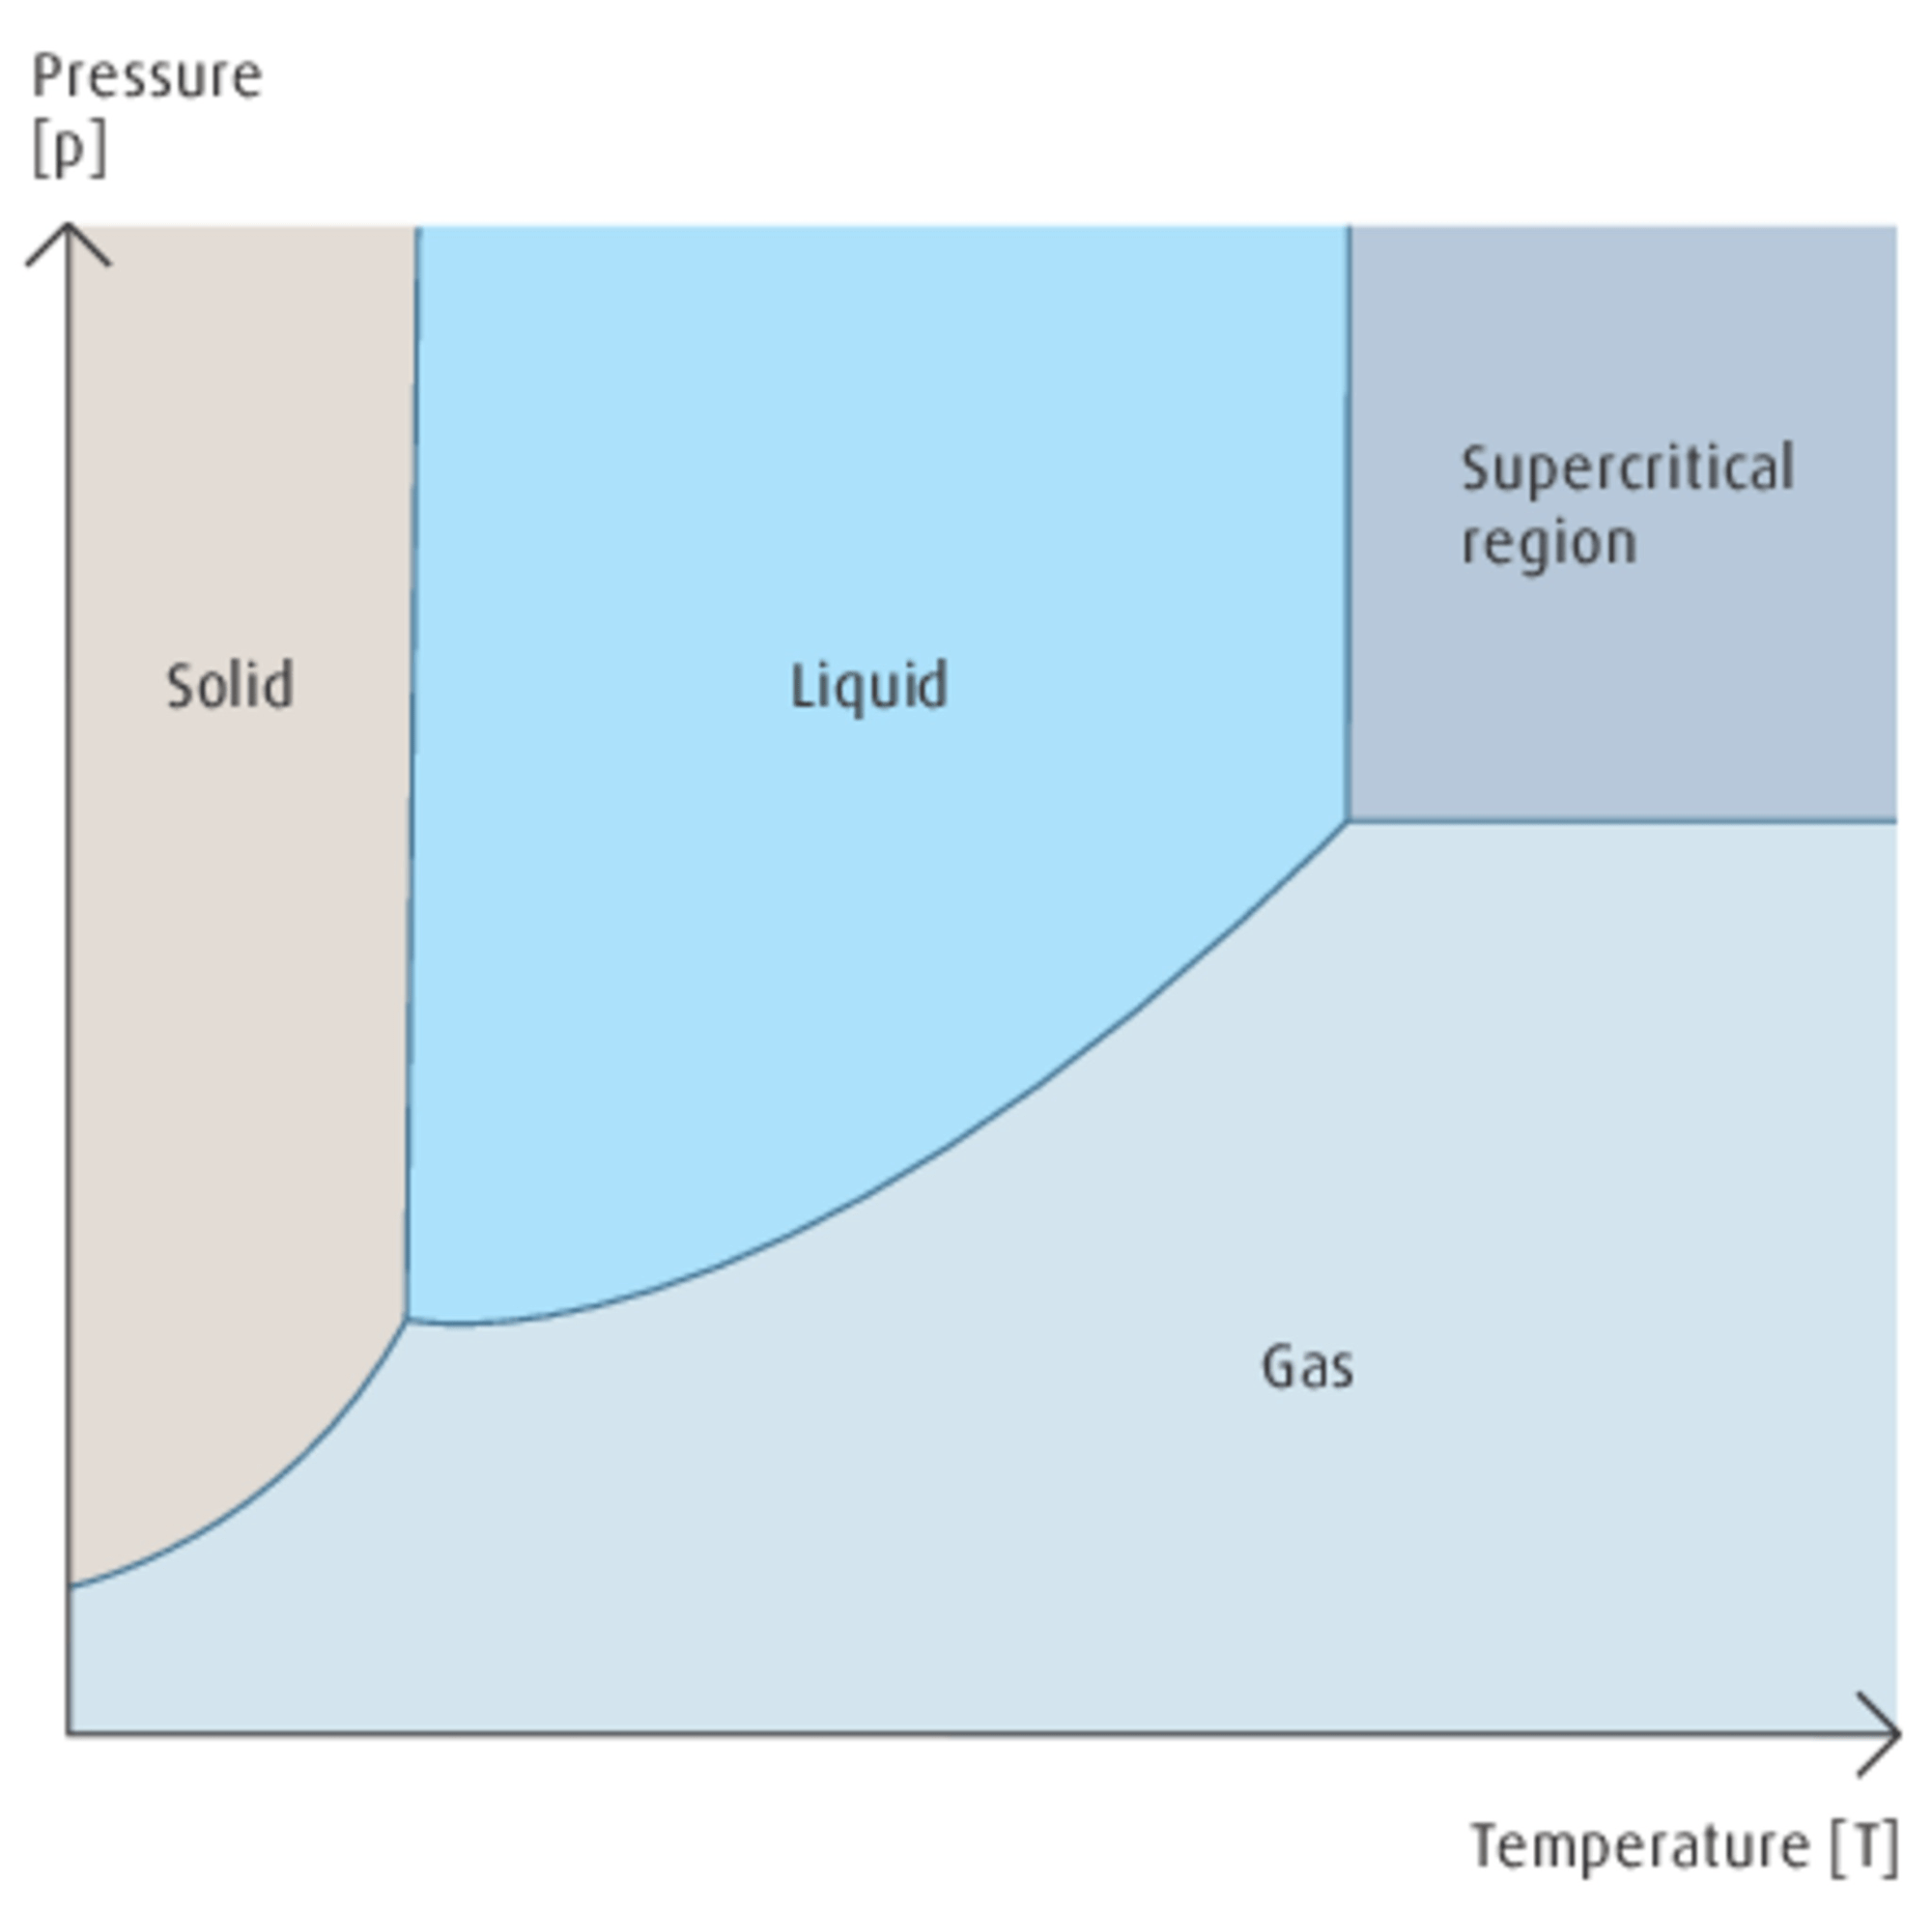 hight resolution of supercritical fluids are produced by heating a gas above its critical temperature or compressing a liquid above its critical pressure